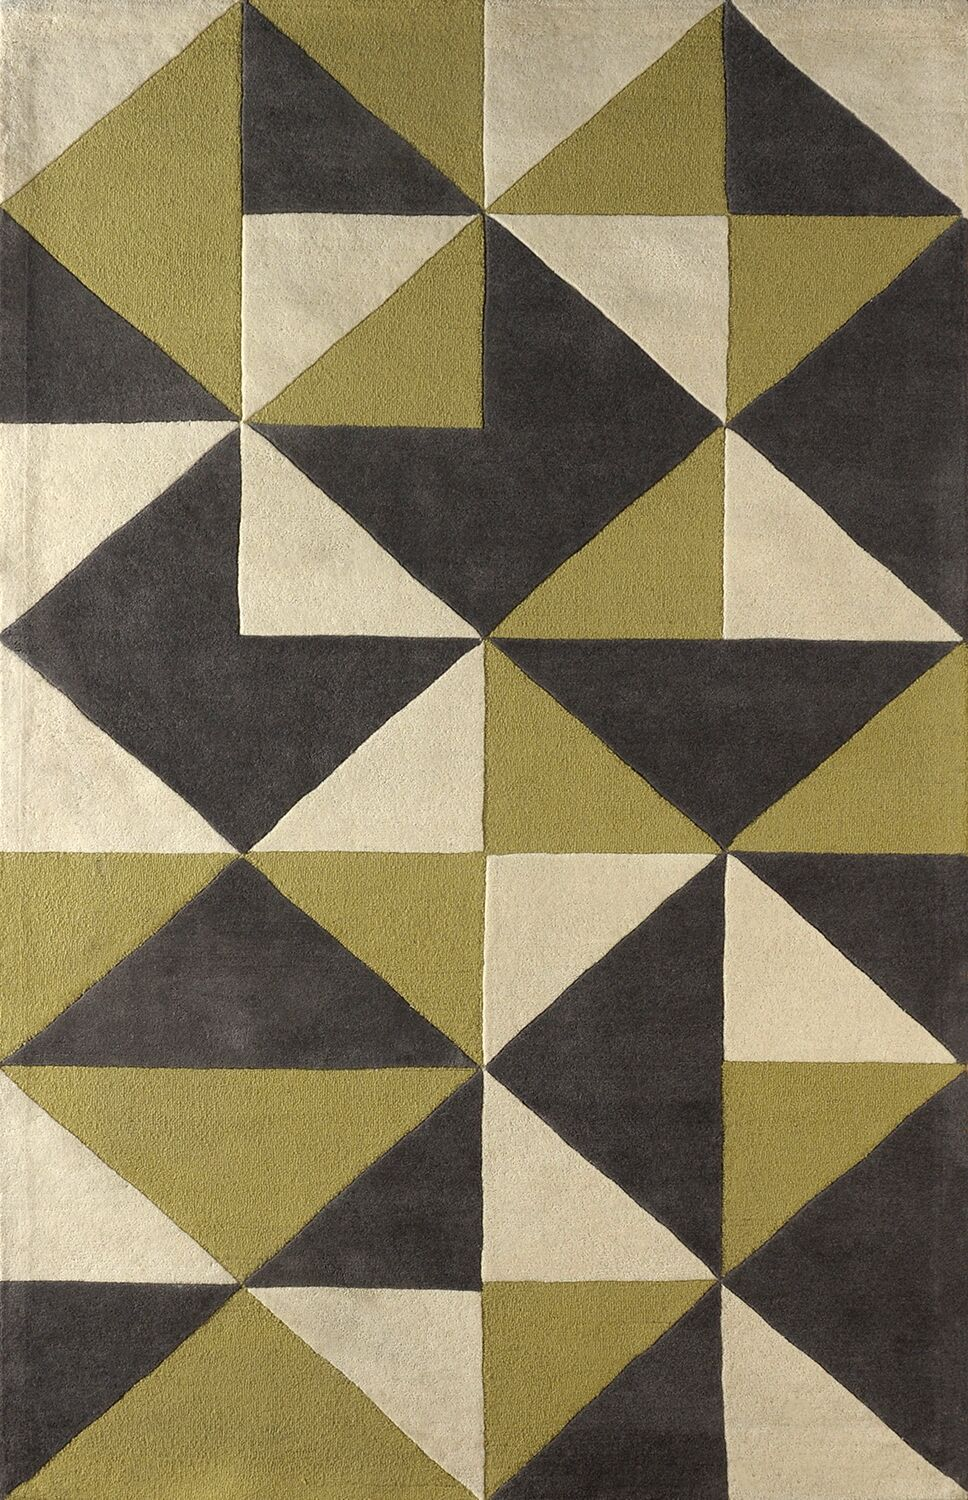 Lueras Hand-Tufted Pear/Ivory Area Rug Rug Size: Rectangle 5' x 8'